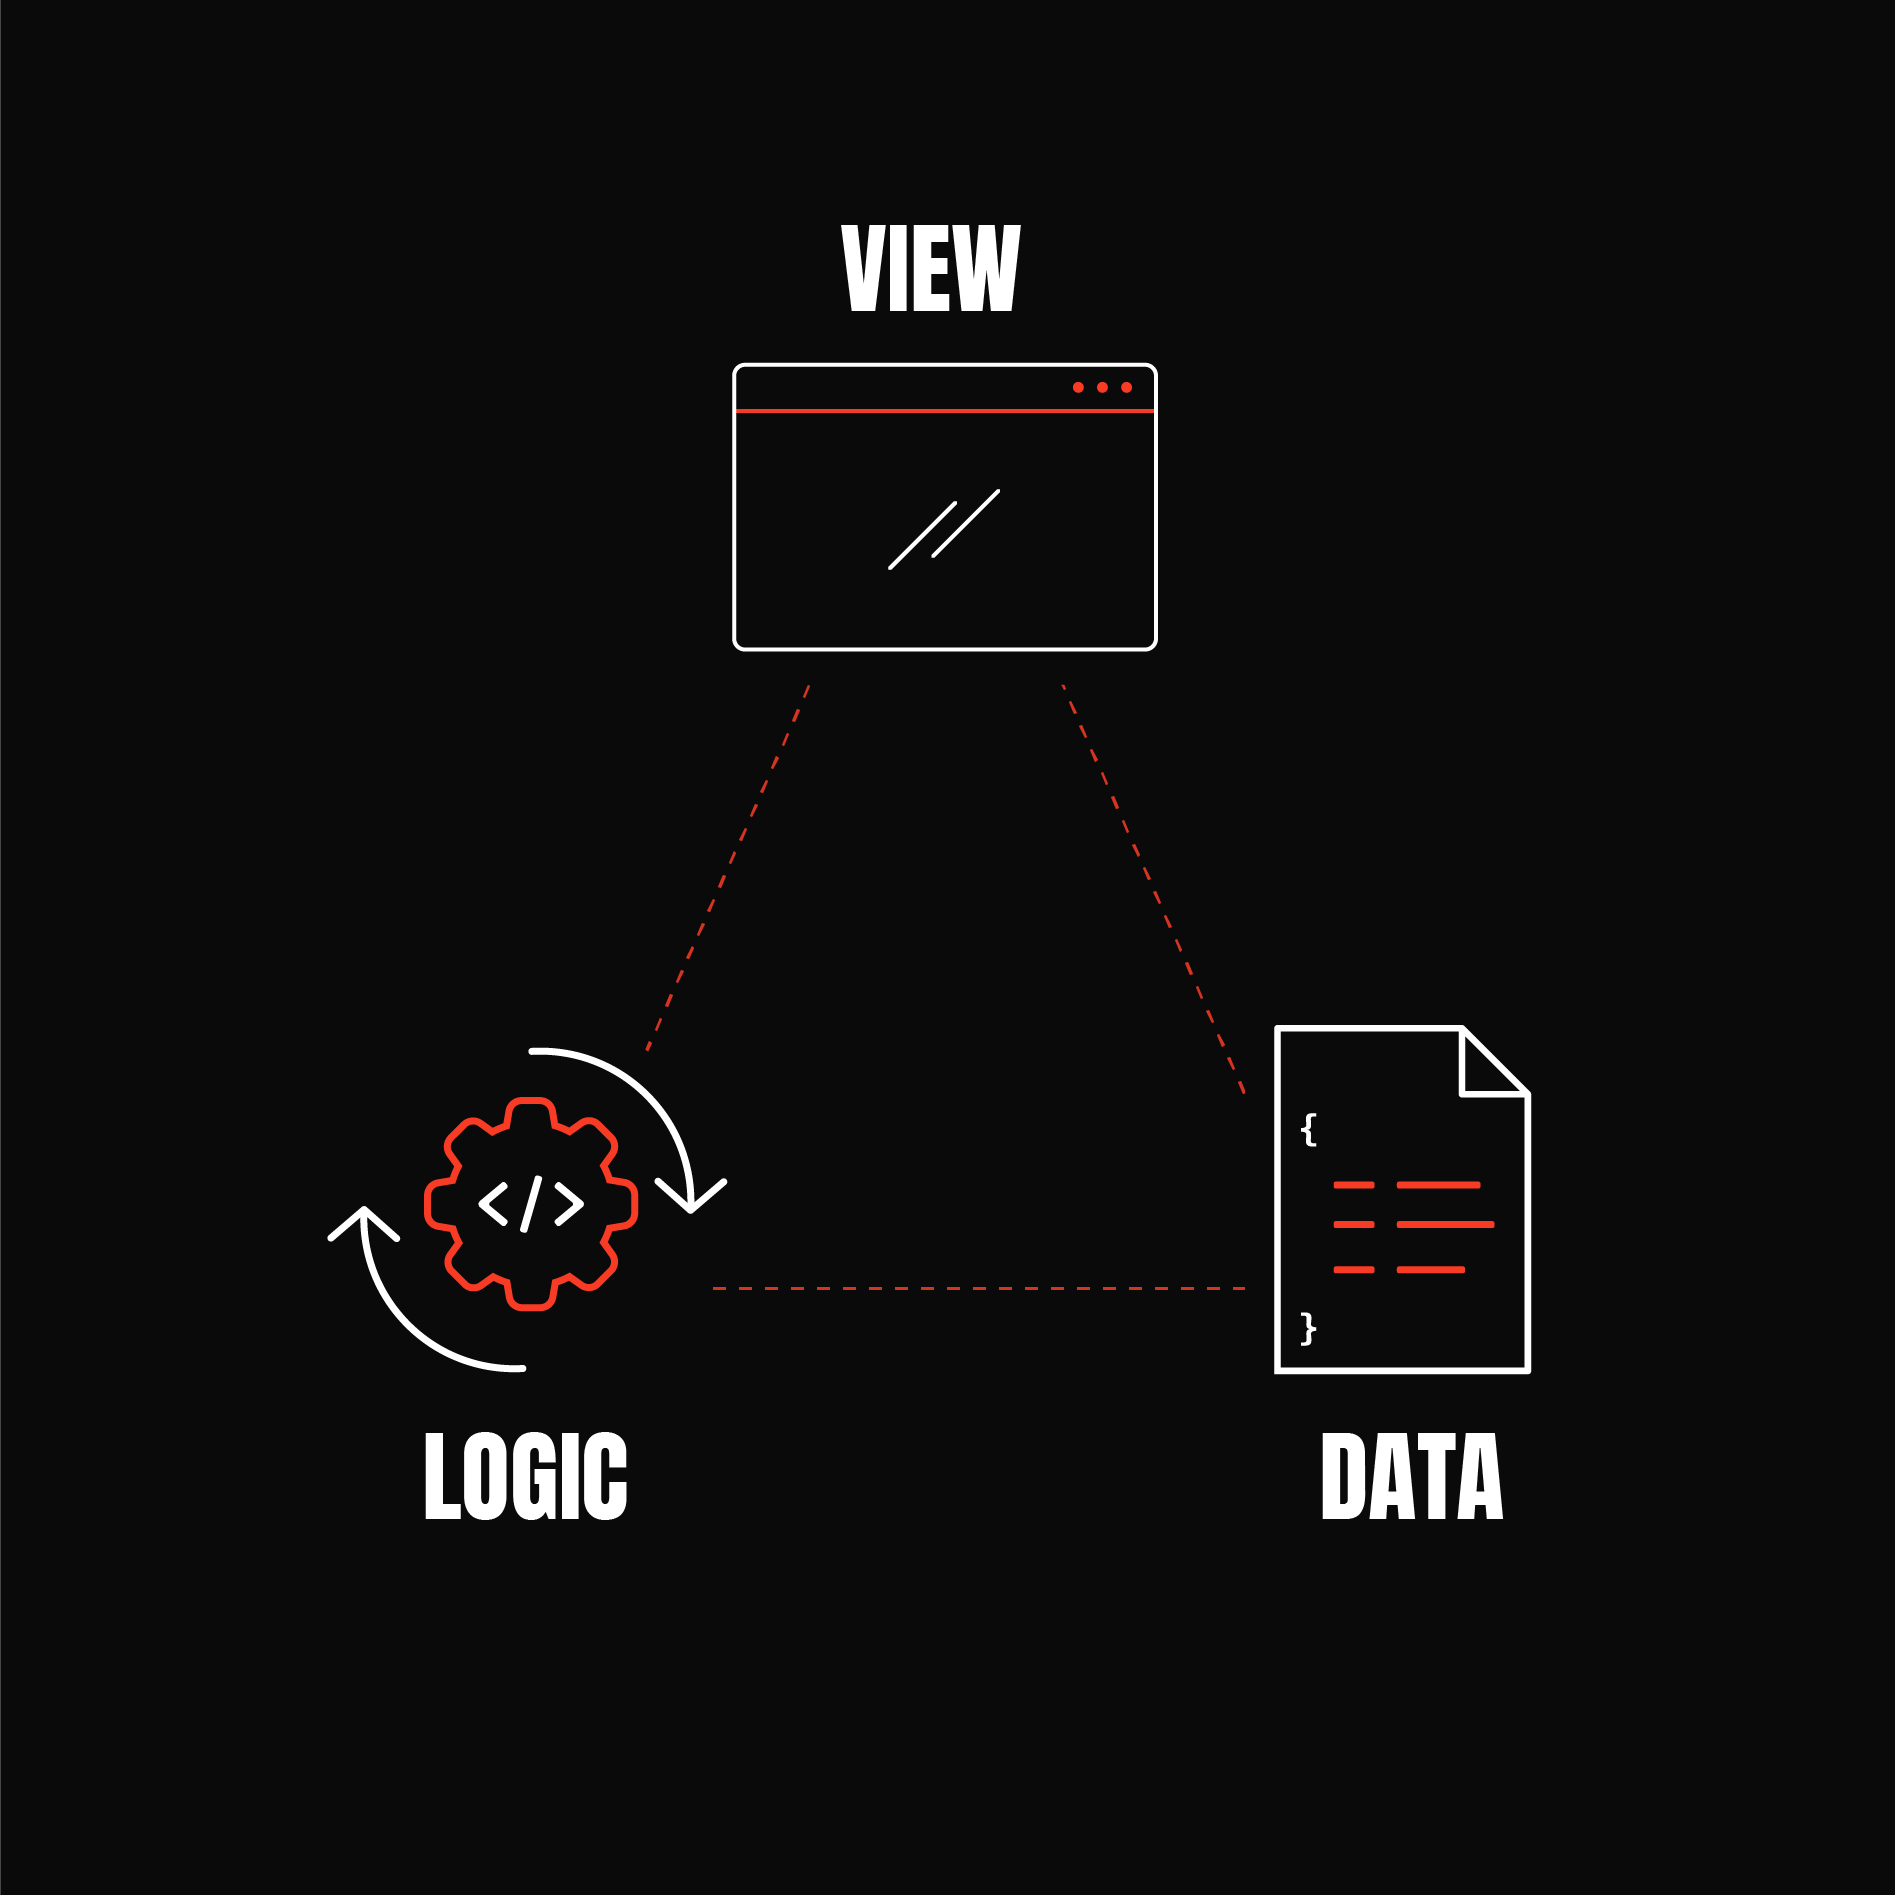 View, data and logic